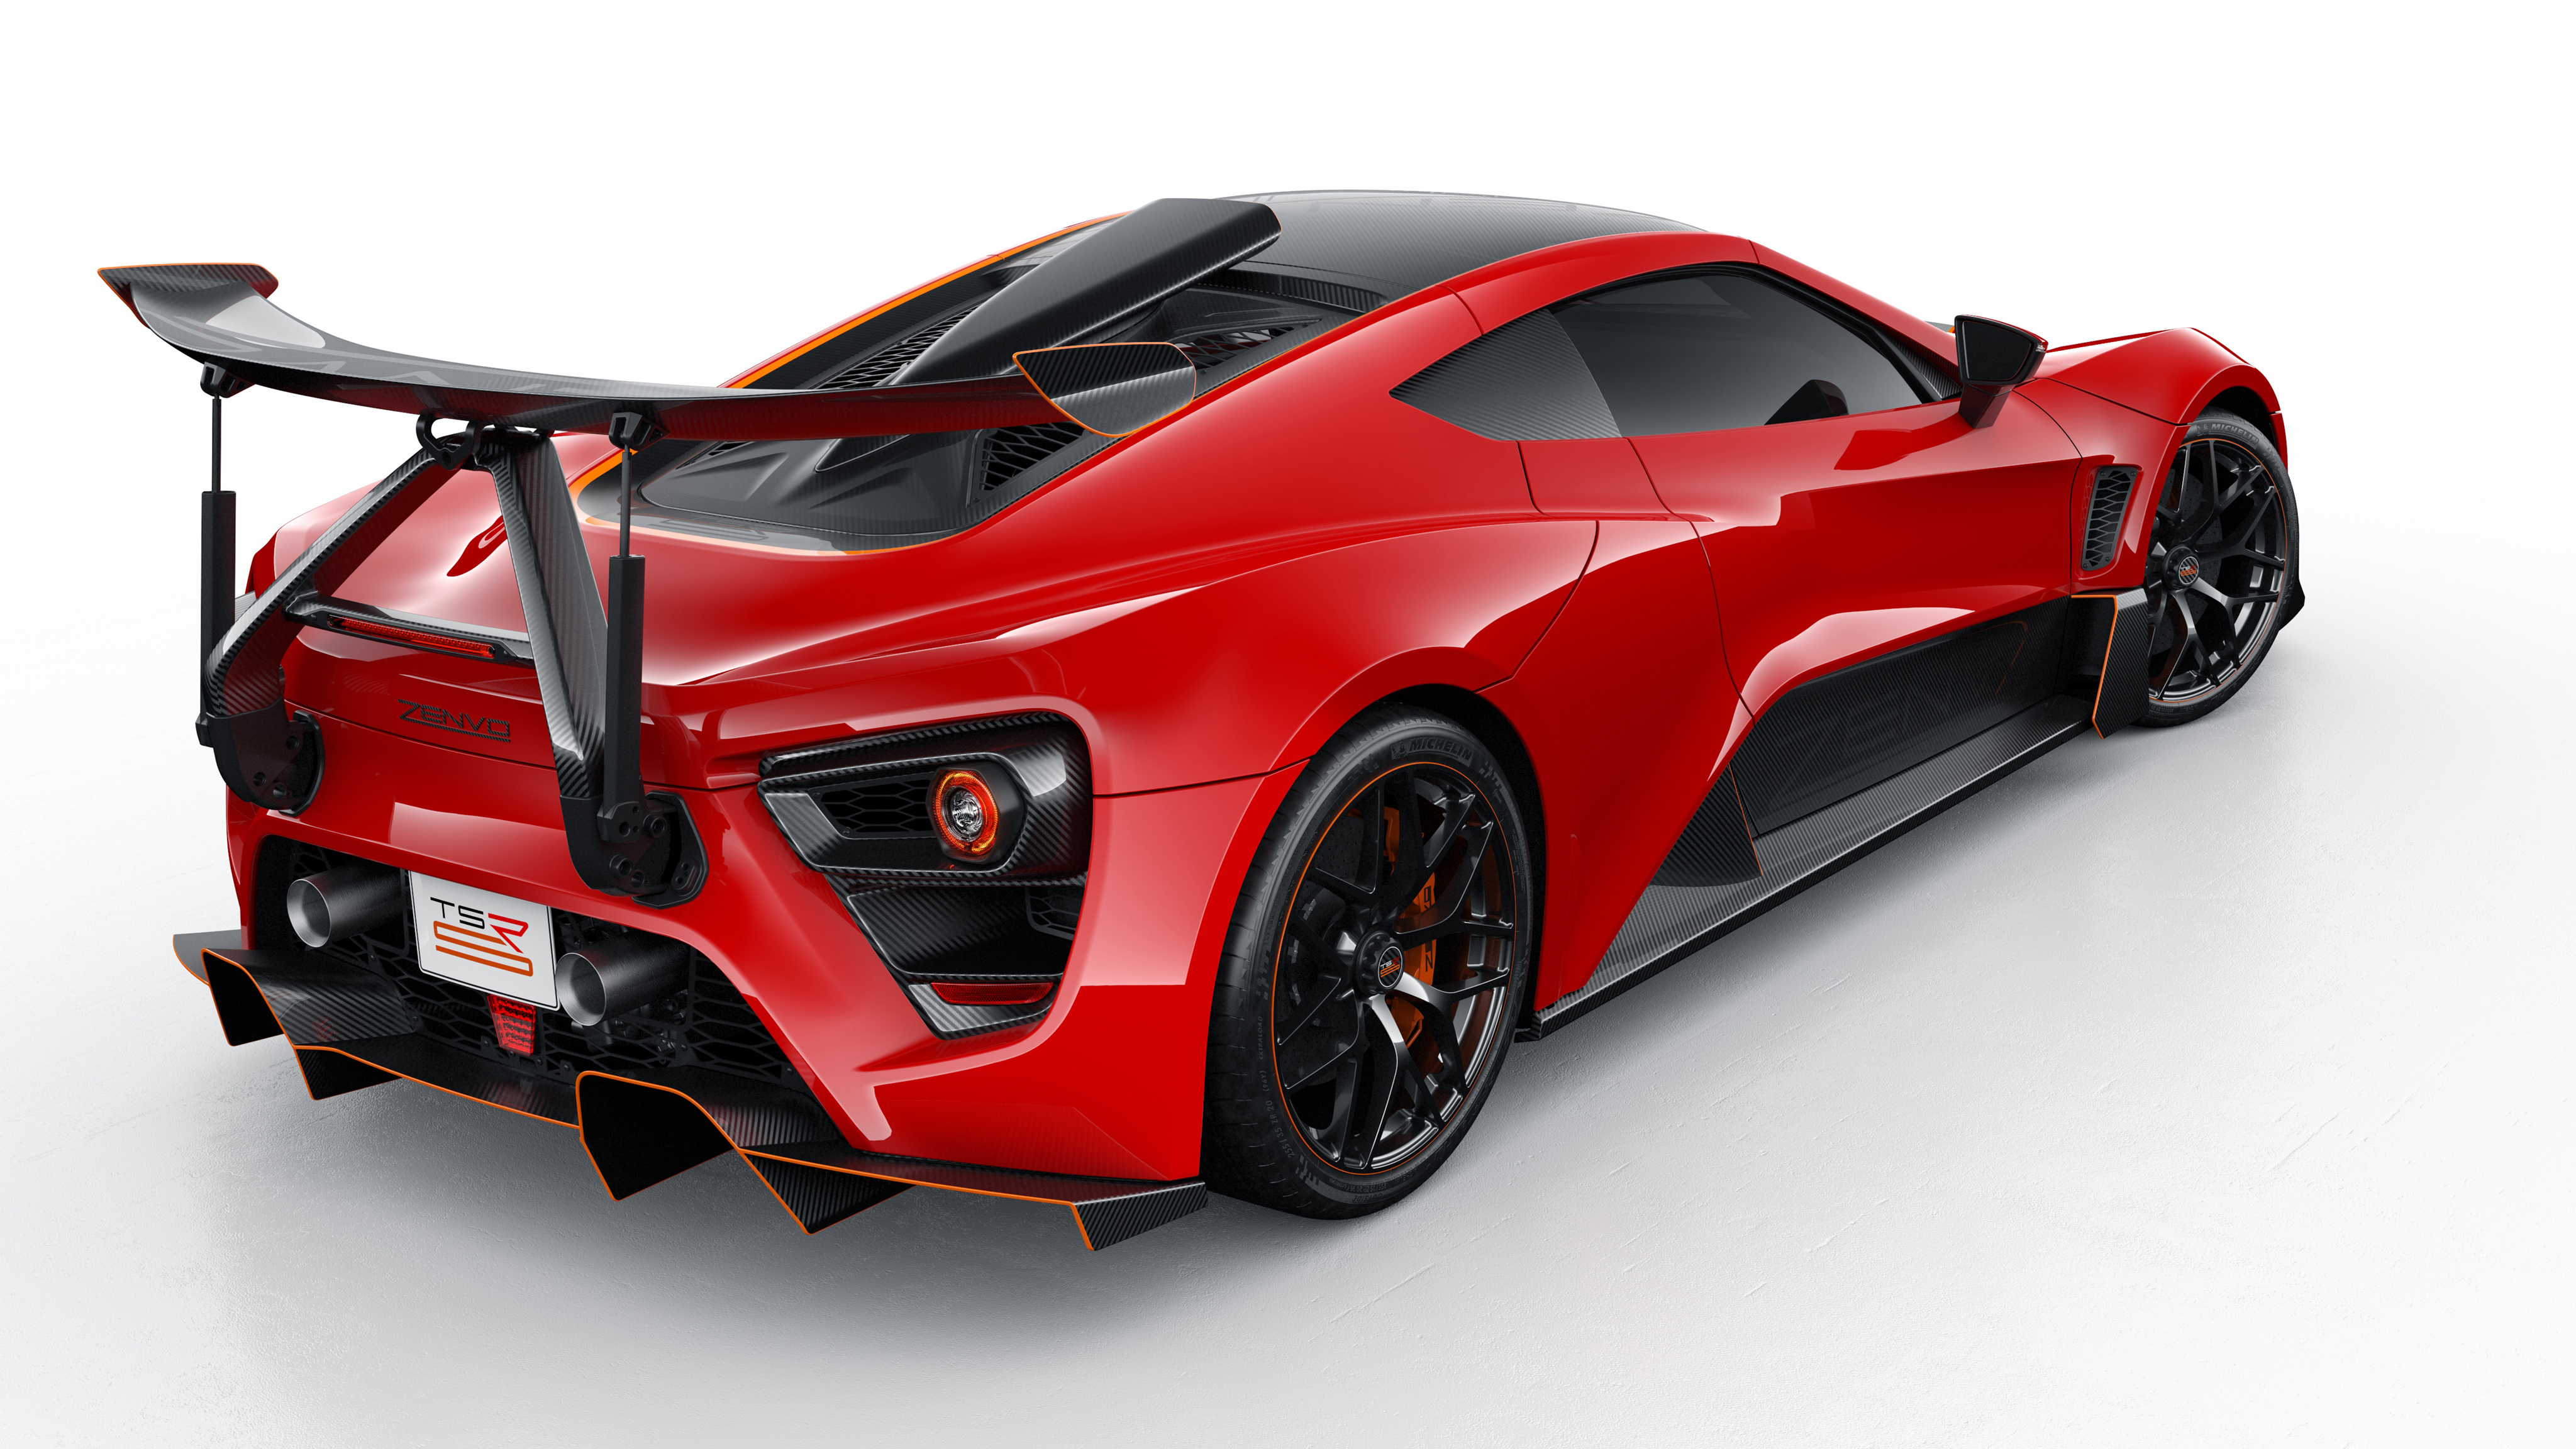 2018 Zenvo Tsr S 4k 2 Wallpaper Hd Car Wallpapers Id 9944